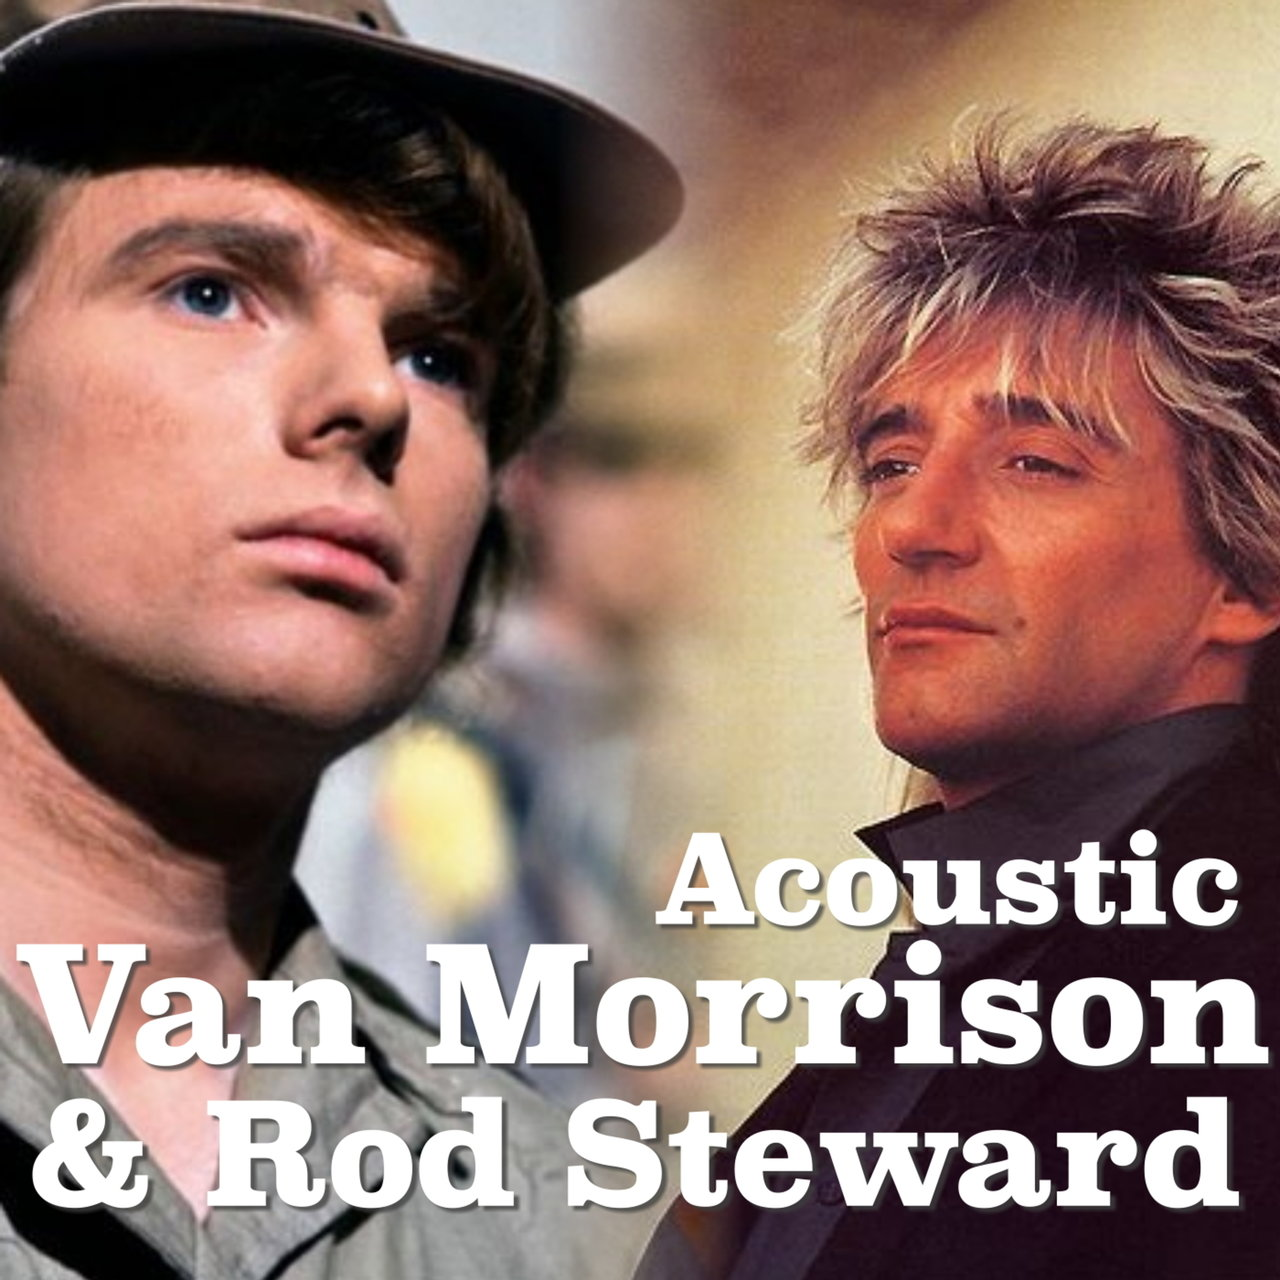 Acoustic Van Morrison & Rod Steward